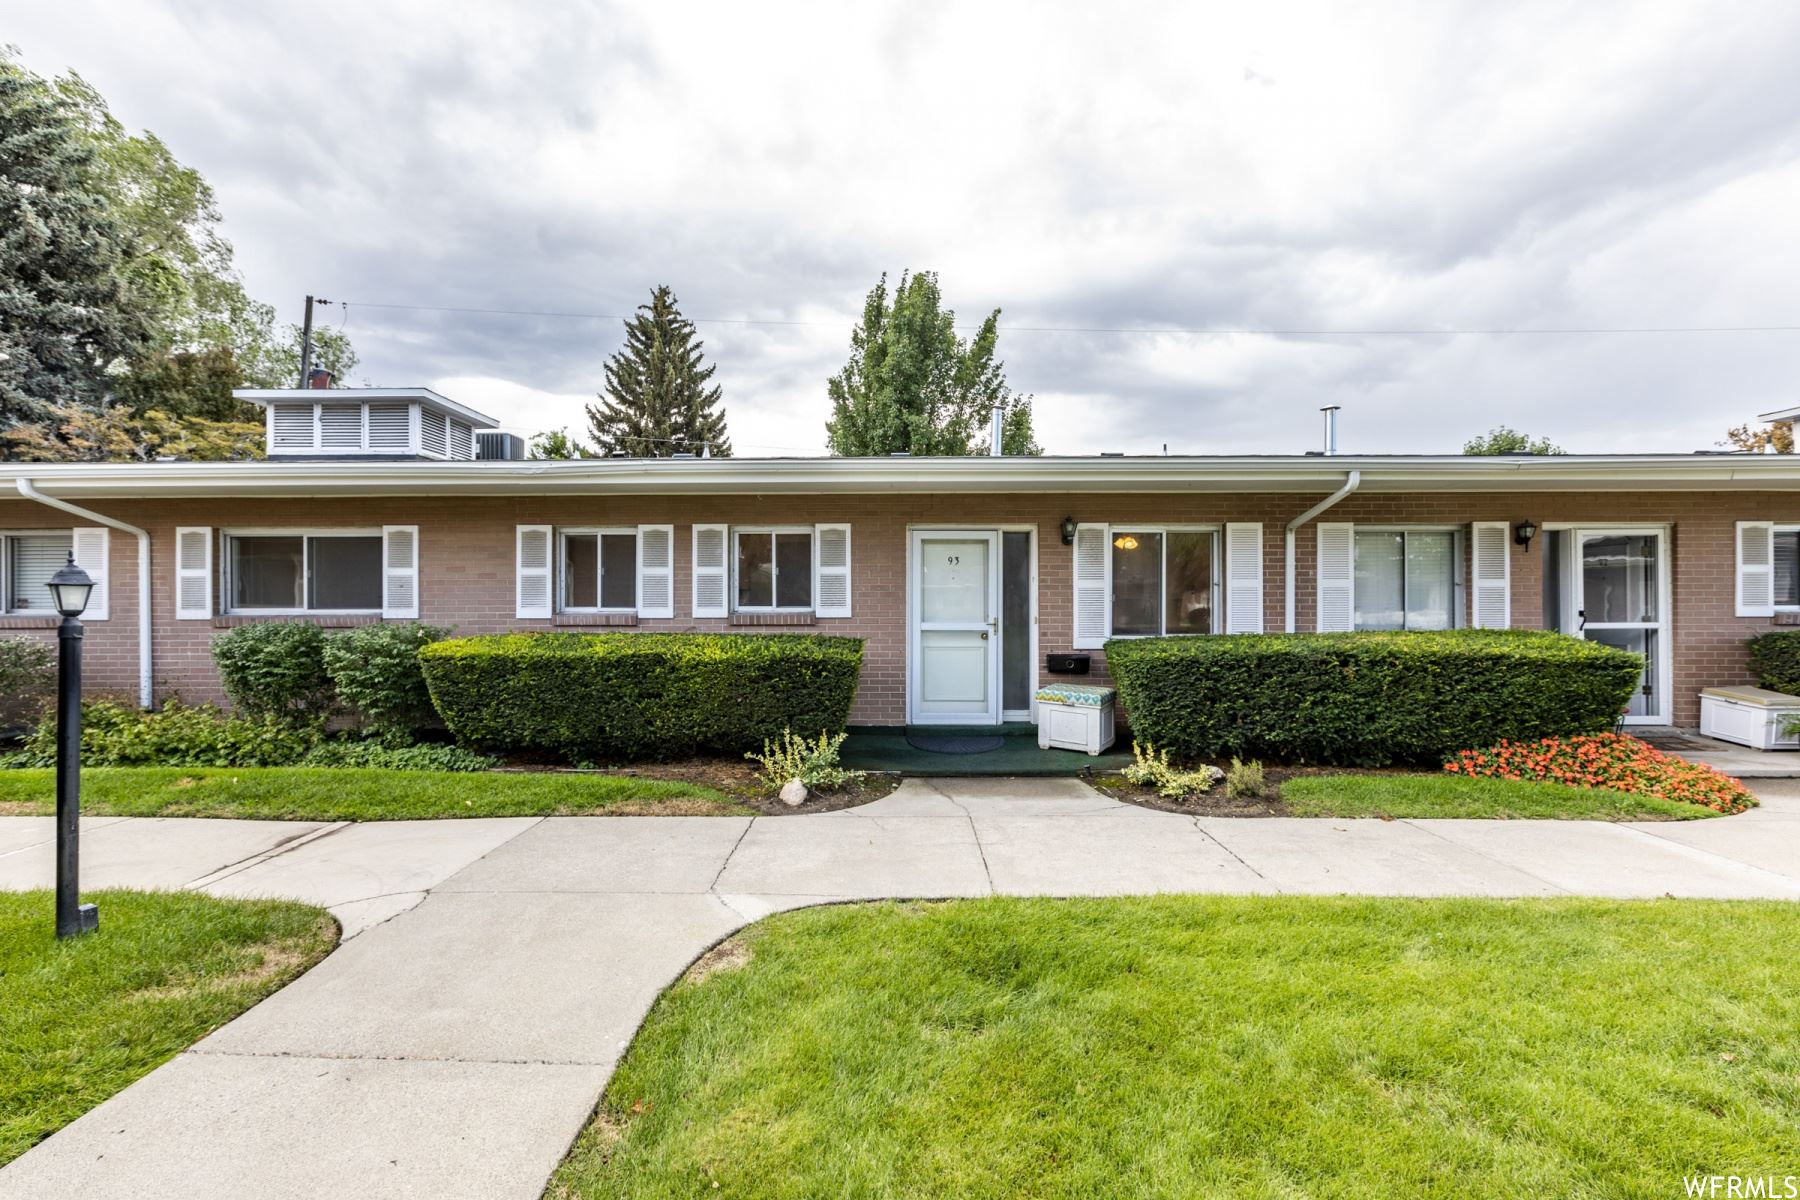 Photo of 2280 E CARRIAGE S LN #93, Holladay, UT 84117 (MLS # 1764221)